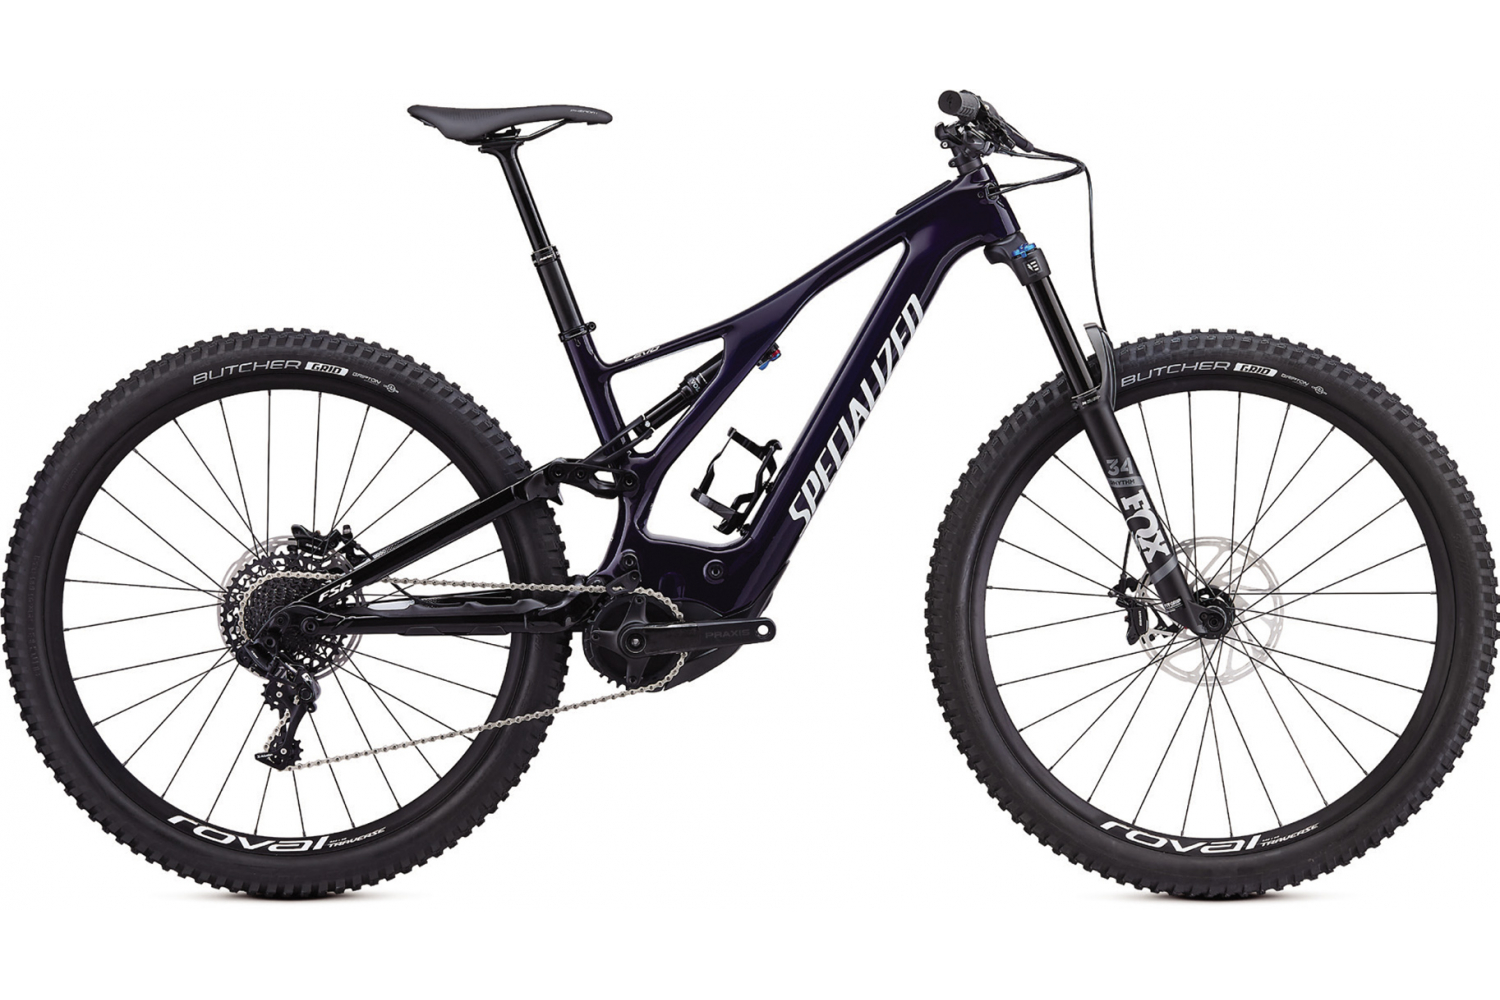 TURBO LEVO Specialized Men's Turbo Levo Comp Carbon 2019 Артикул 95219-4202, 95219-4203, 95219-4204, 95219-4205, 95219-4302, 95219-4303, 95219-4304, 95219-4305